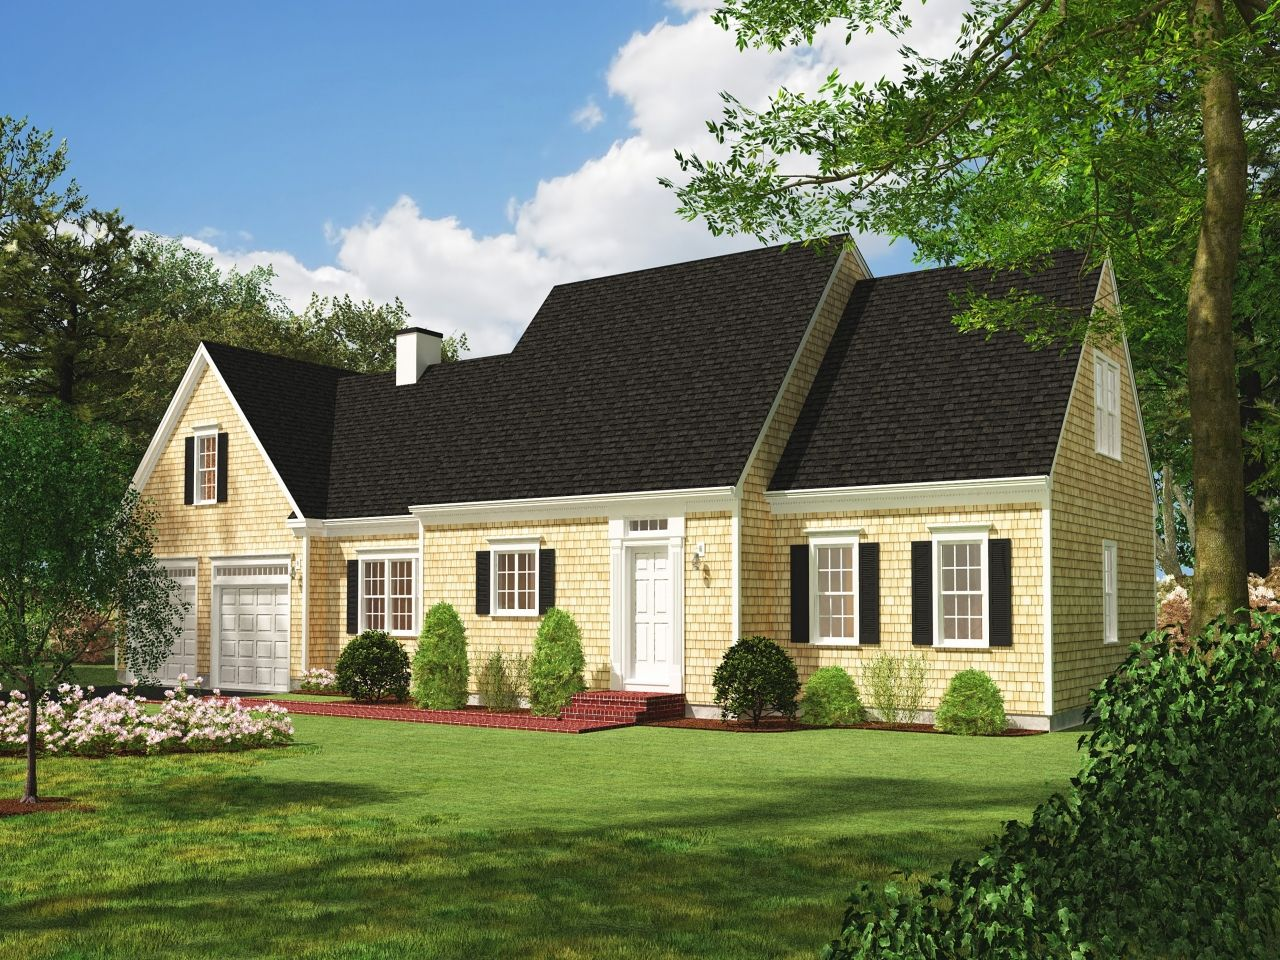 cape cod style house interior plans for homes pics photos home